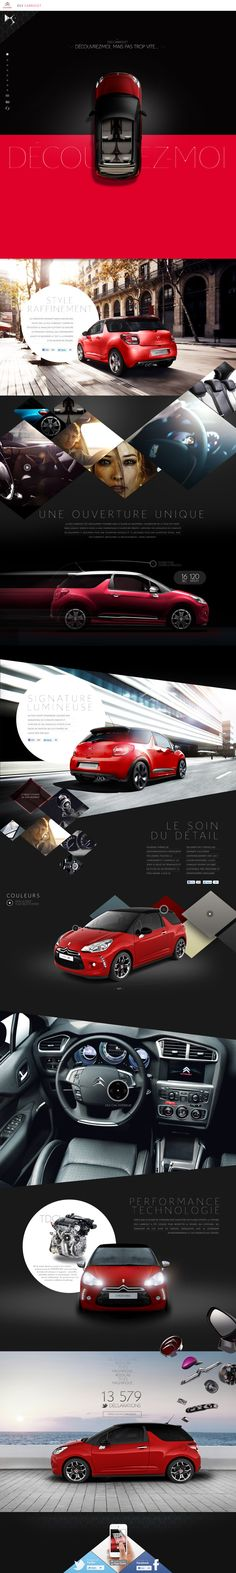 Citroen DS3 Cab by Sylvain Weiss, via Behance - powerful color palette great art direction